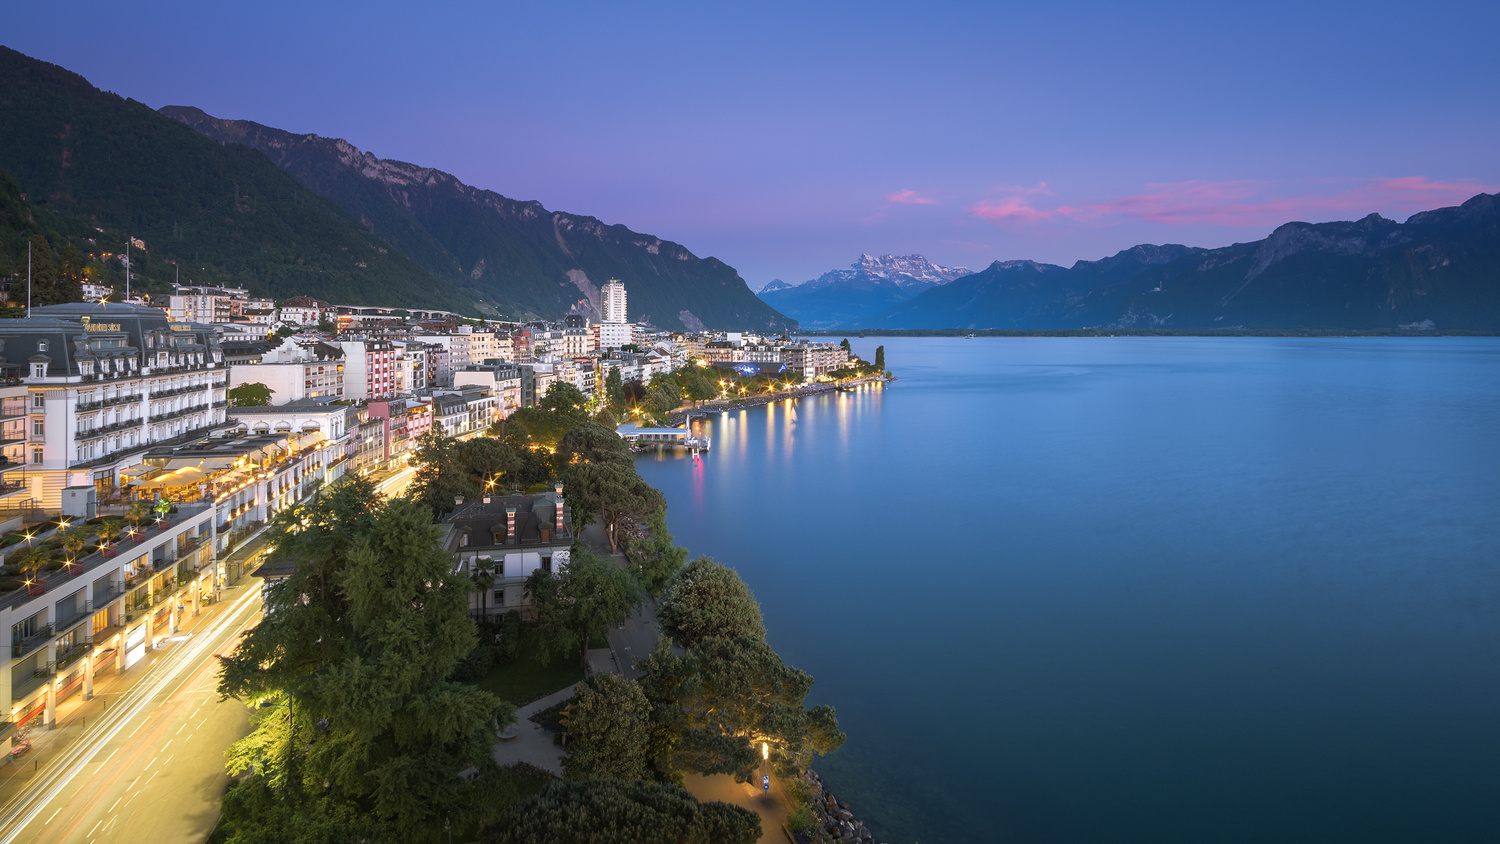 Montreux by Anton Galitch